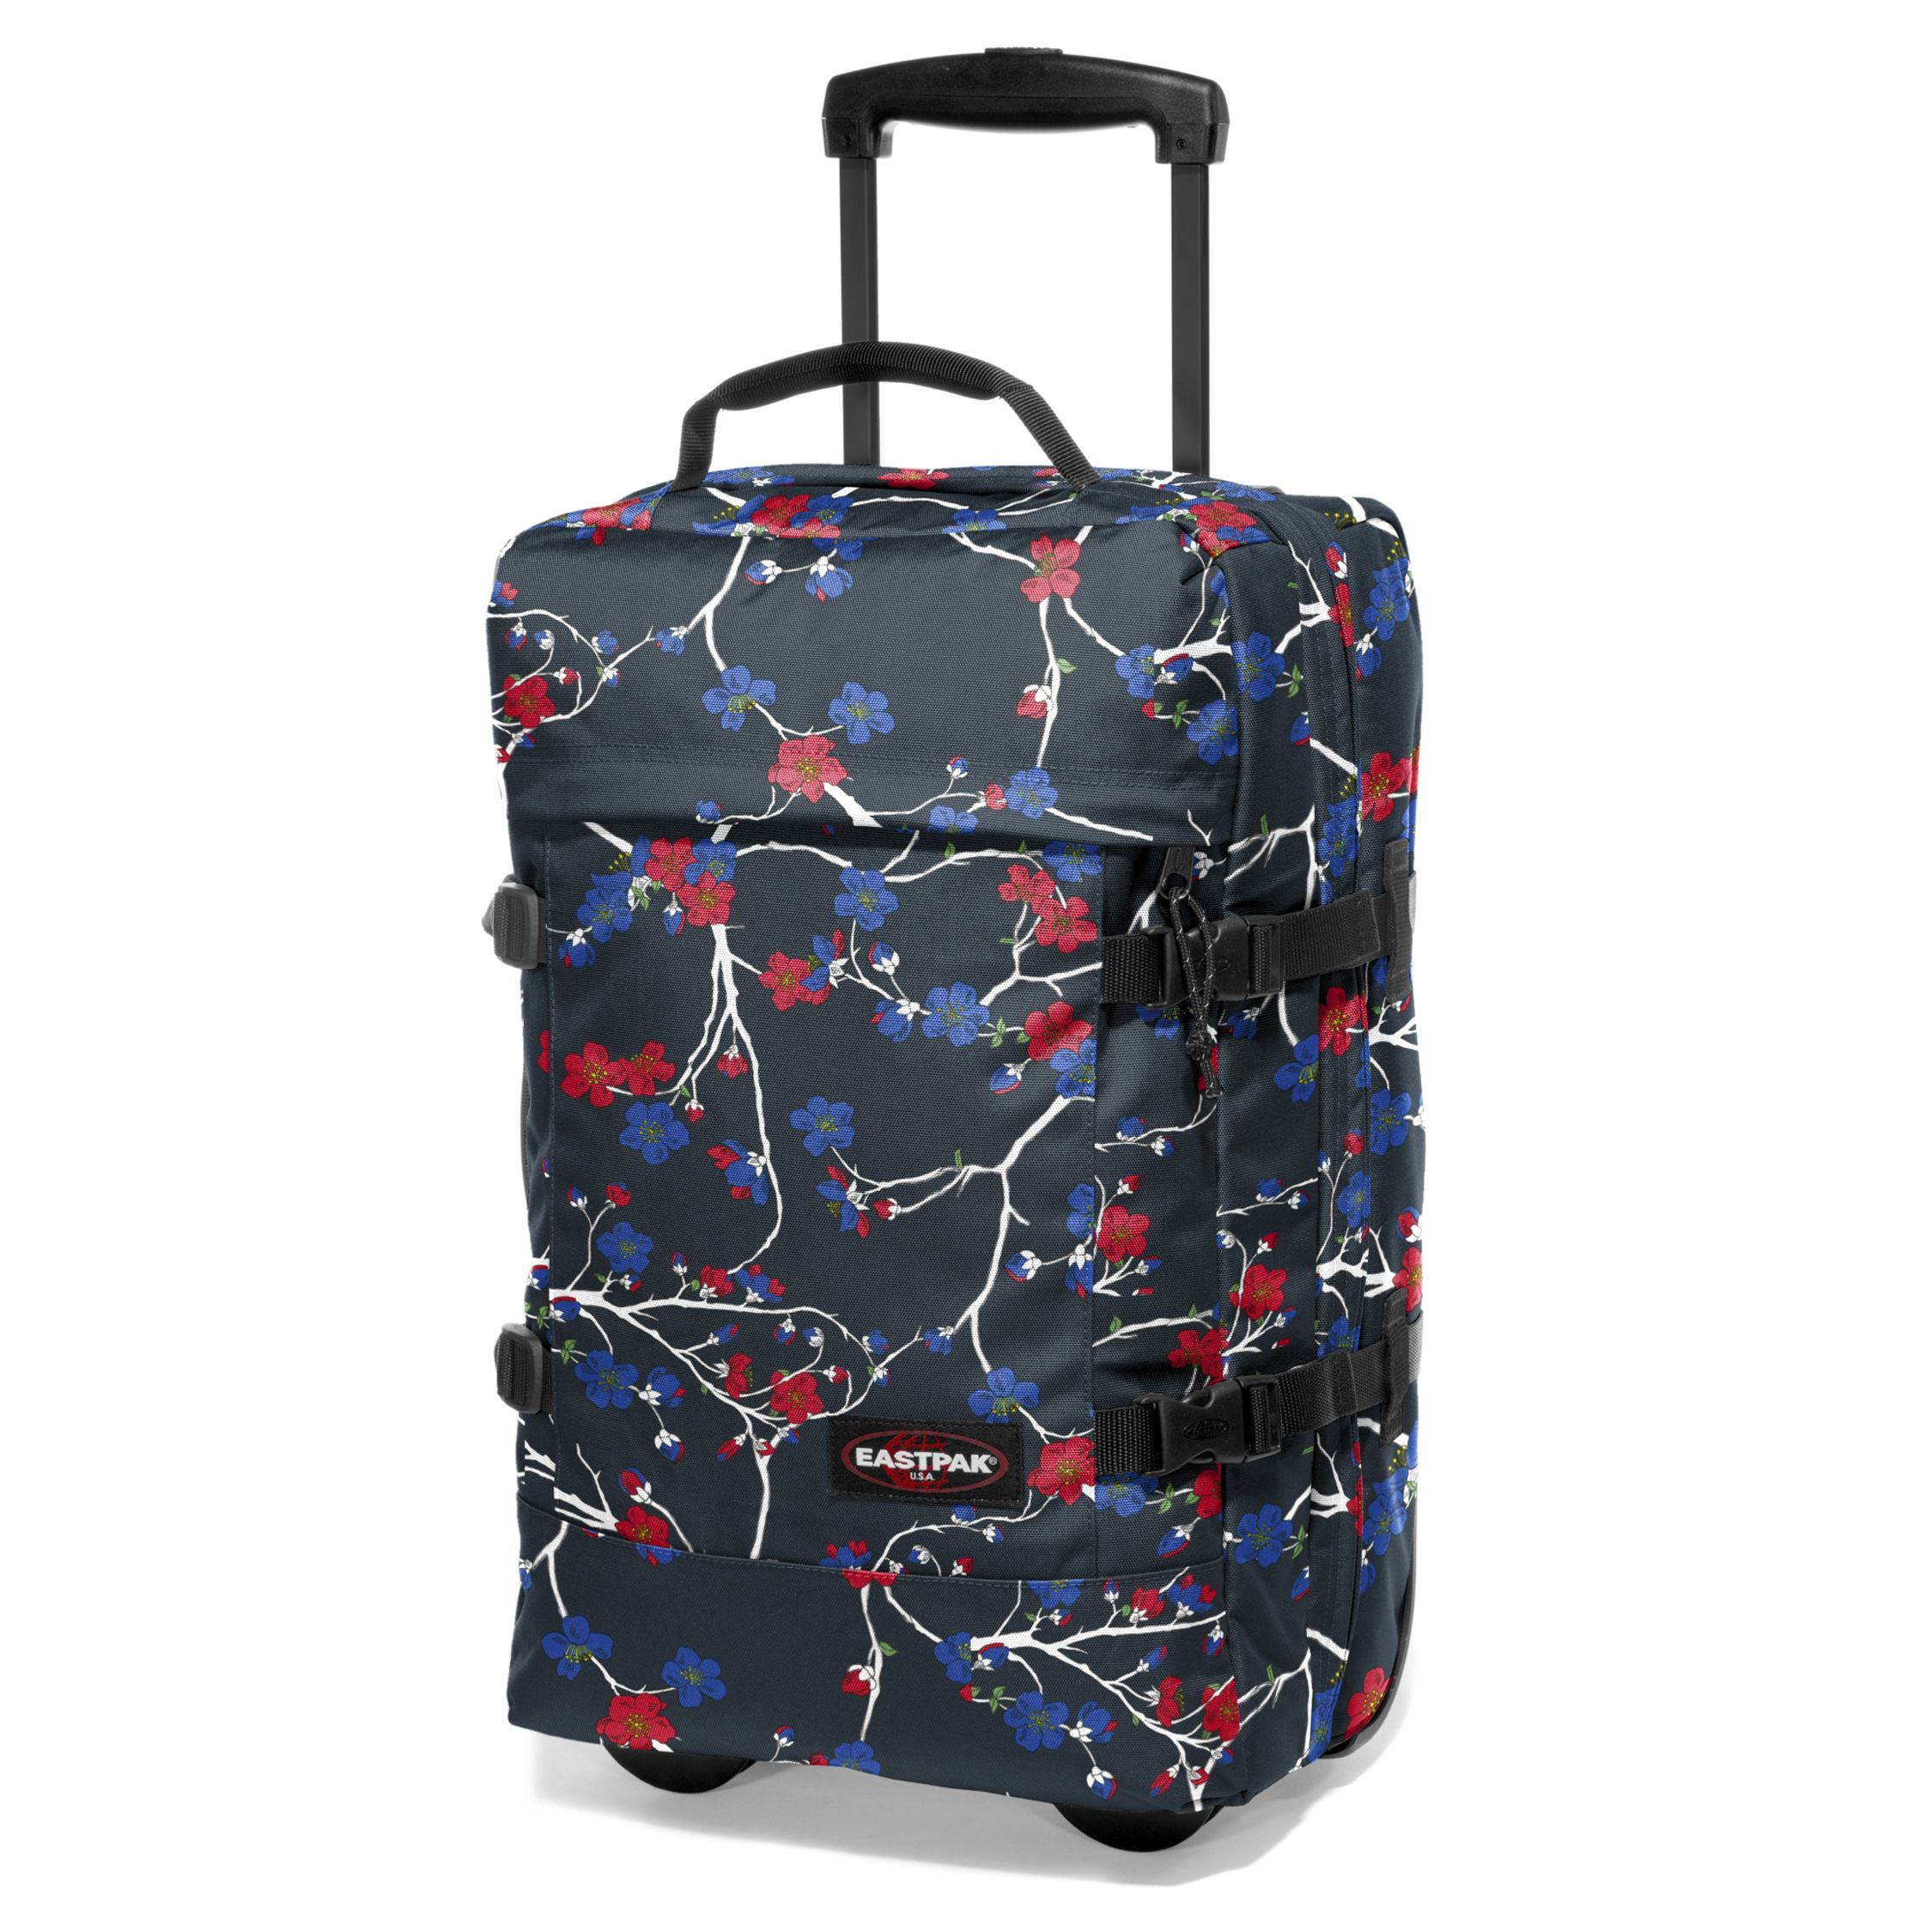 Eastpak Transfer 2-Wheel Holdall, Floral